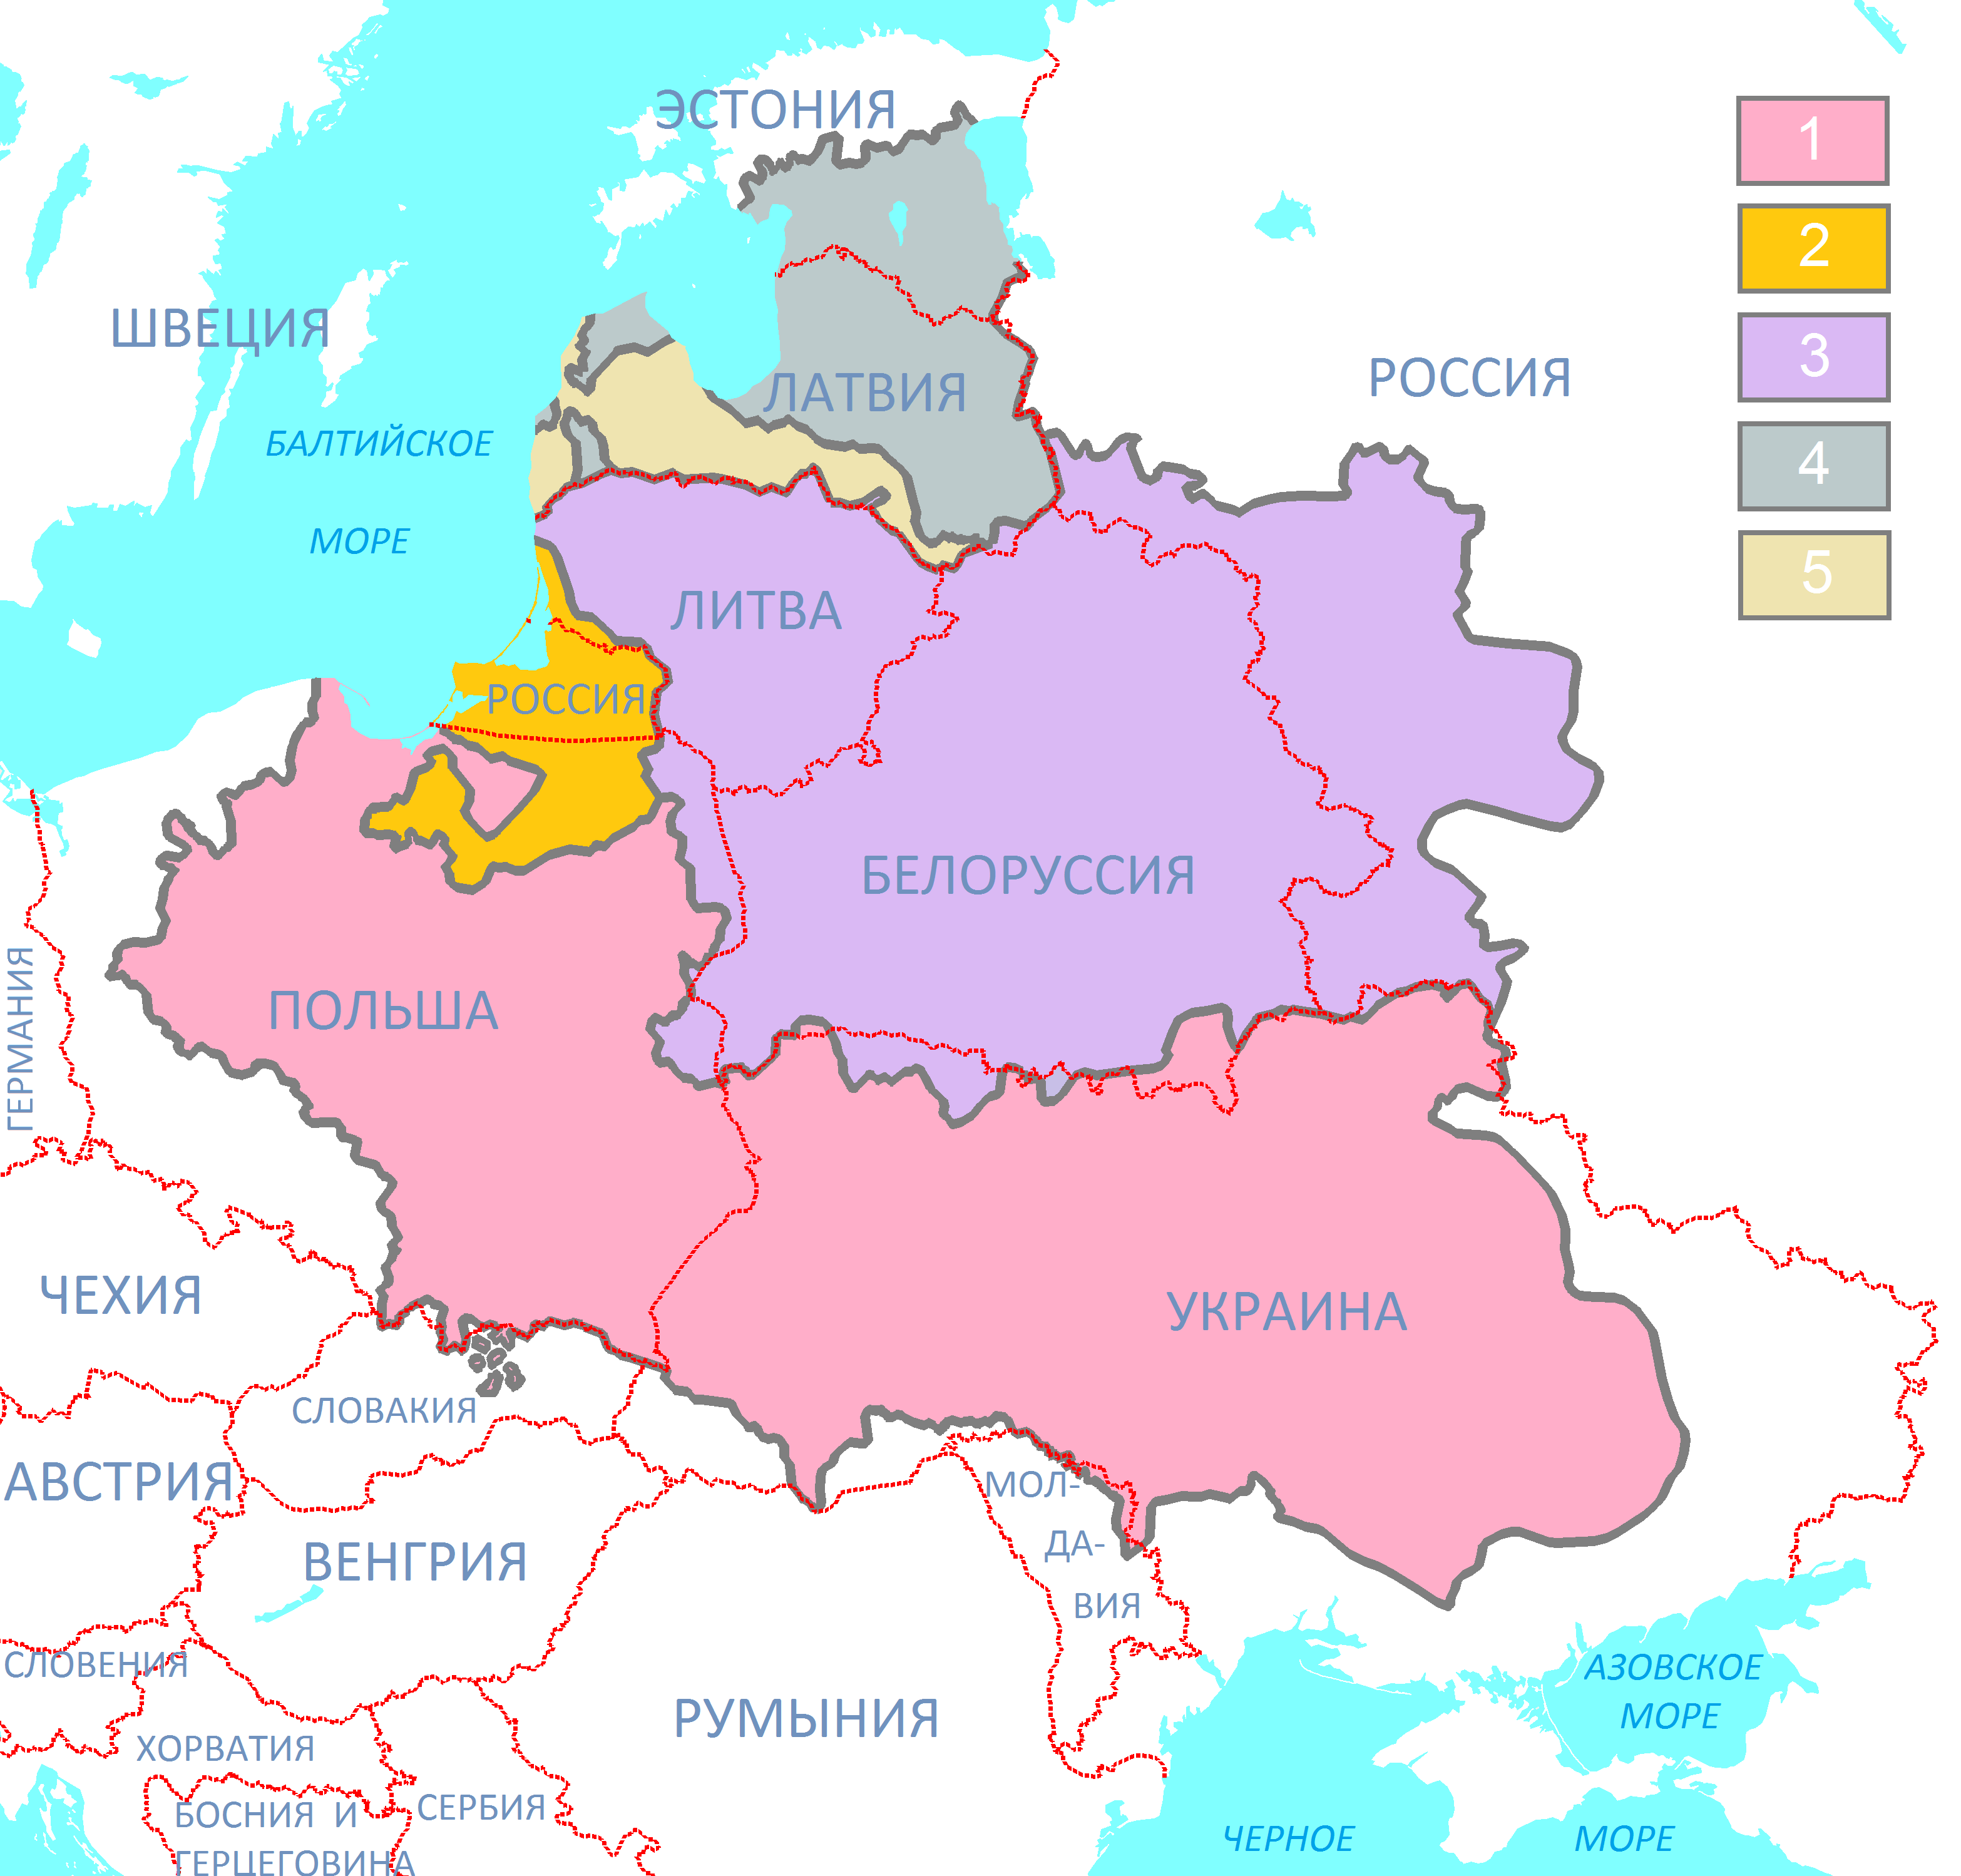 Polish-Lithuanian_Commonwealth_(1619)_compared_with_today's_borders_(Russian_version).png